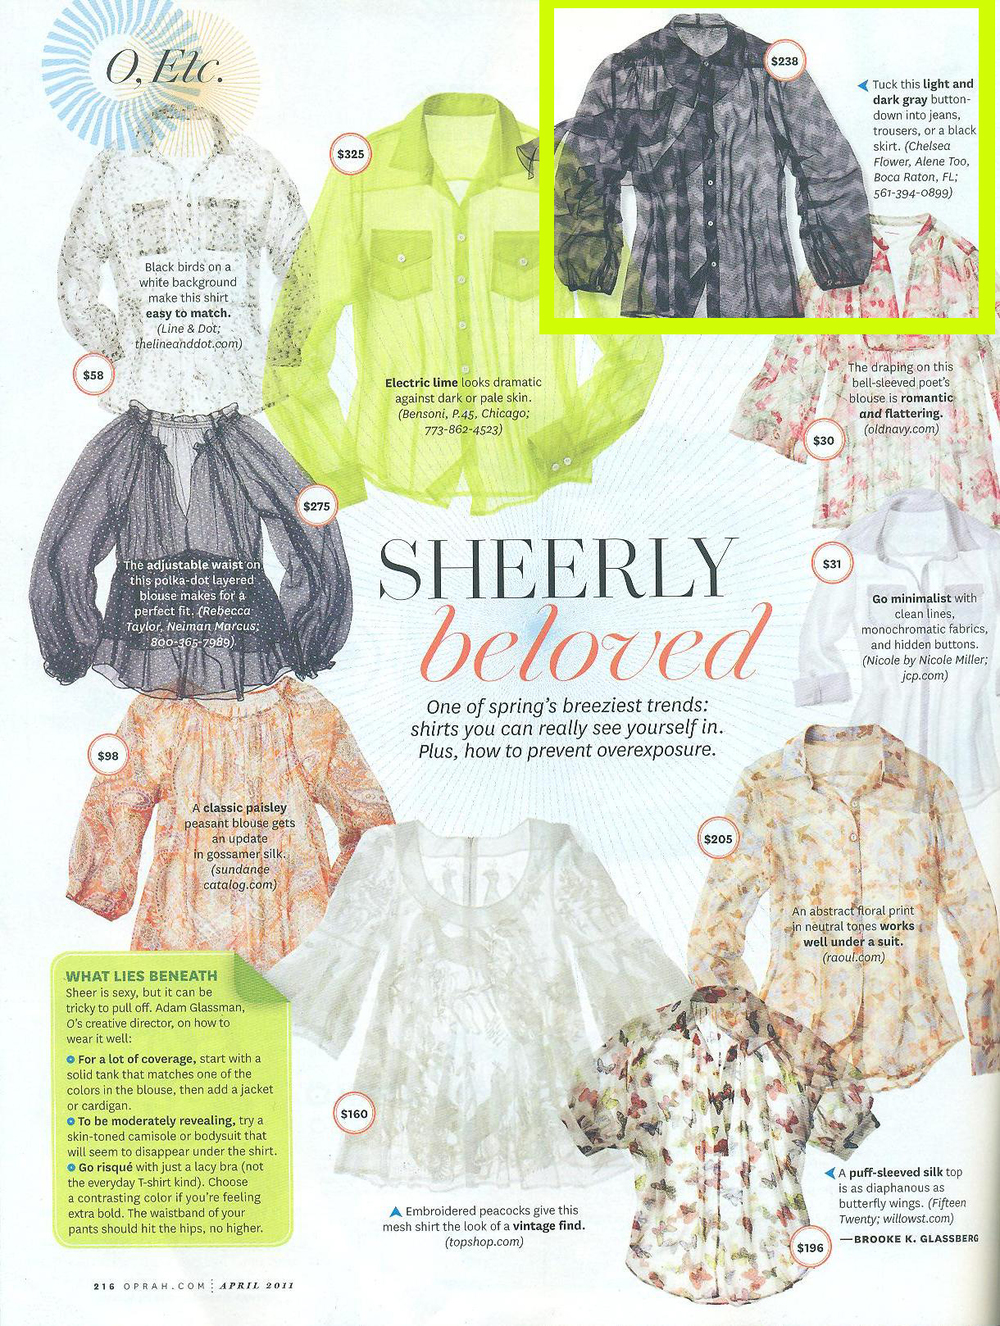 O The Oprah Mag April 2011 Article (2).jpg